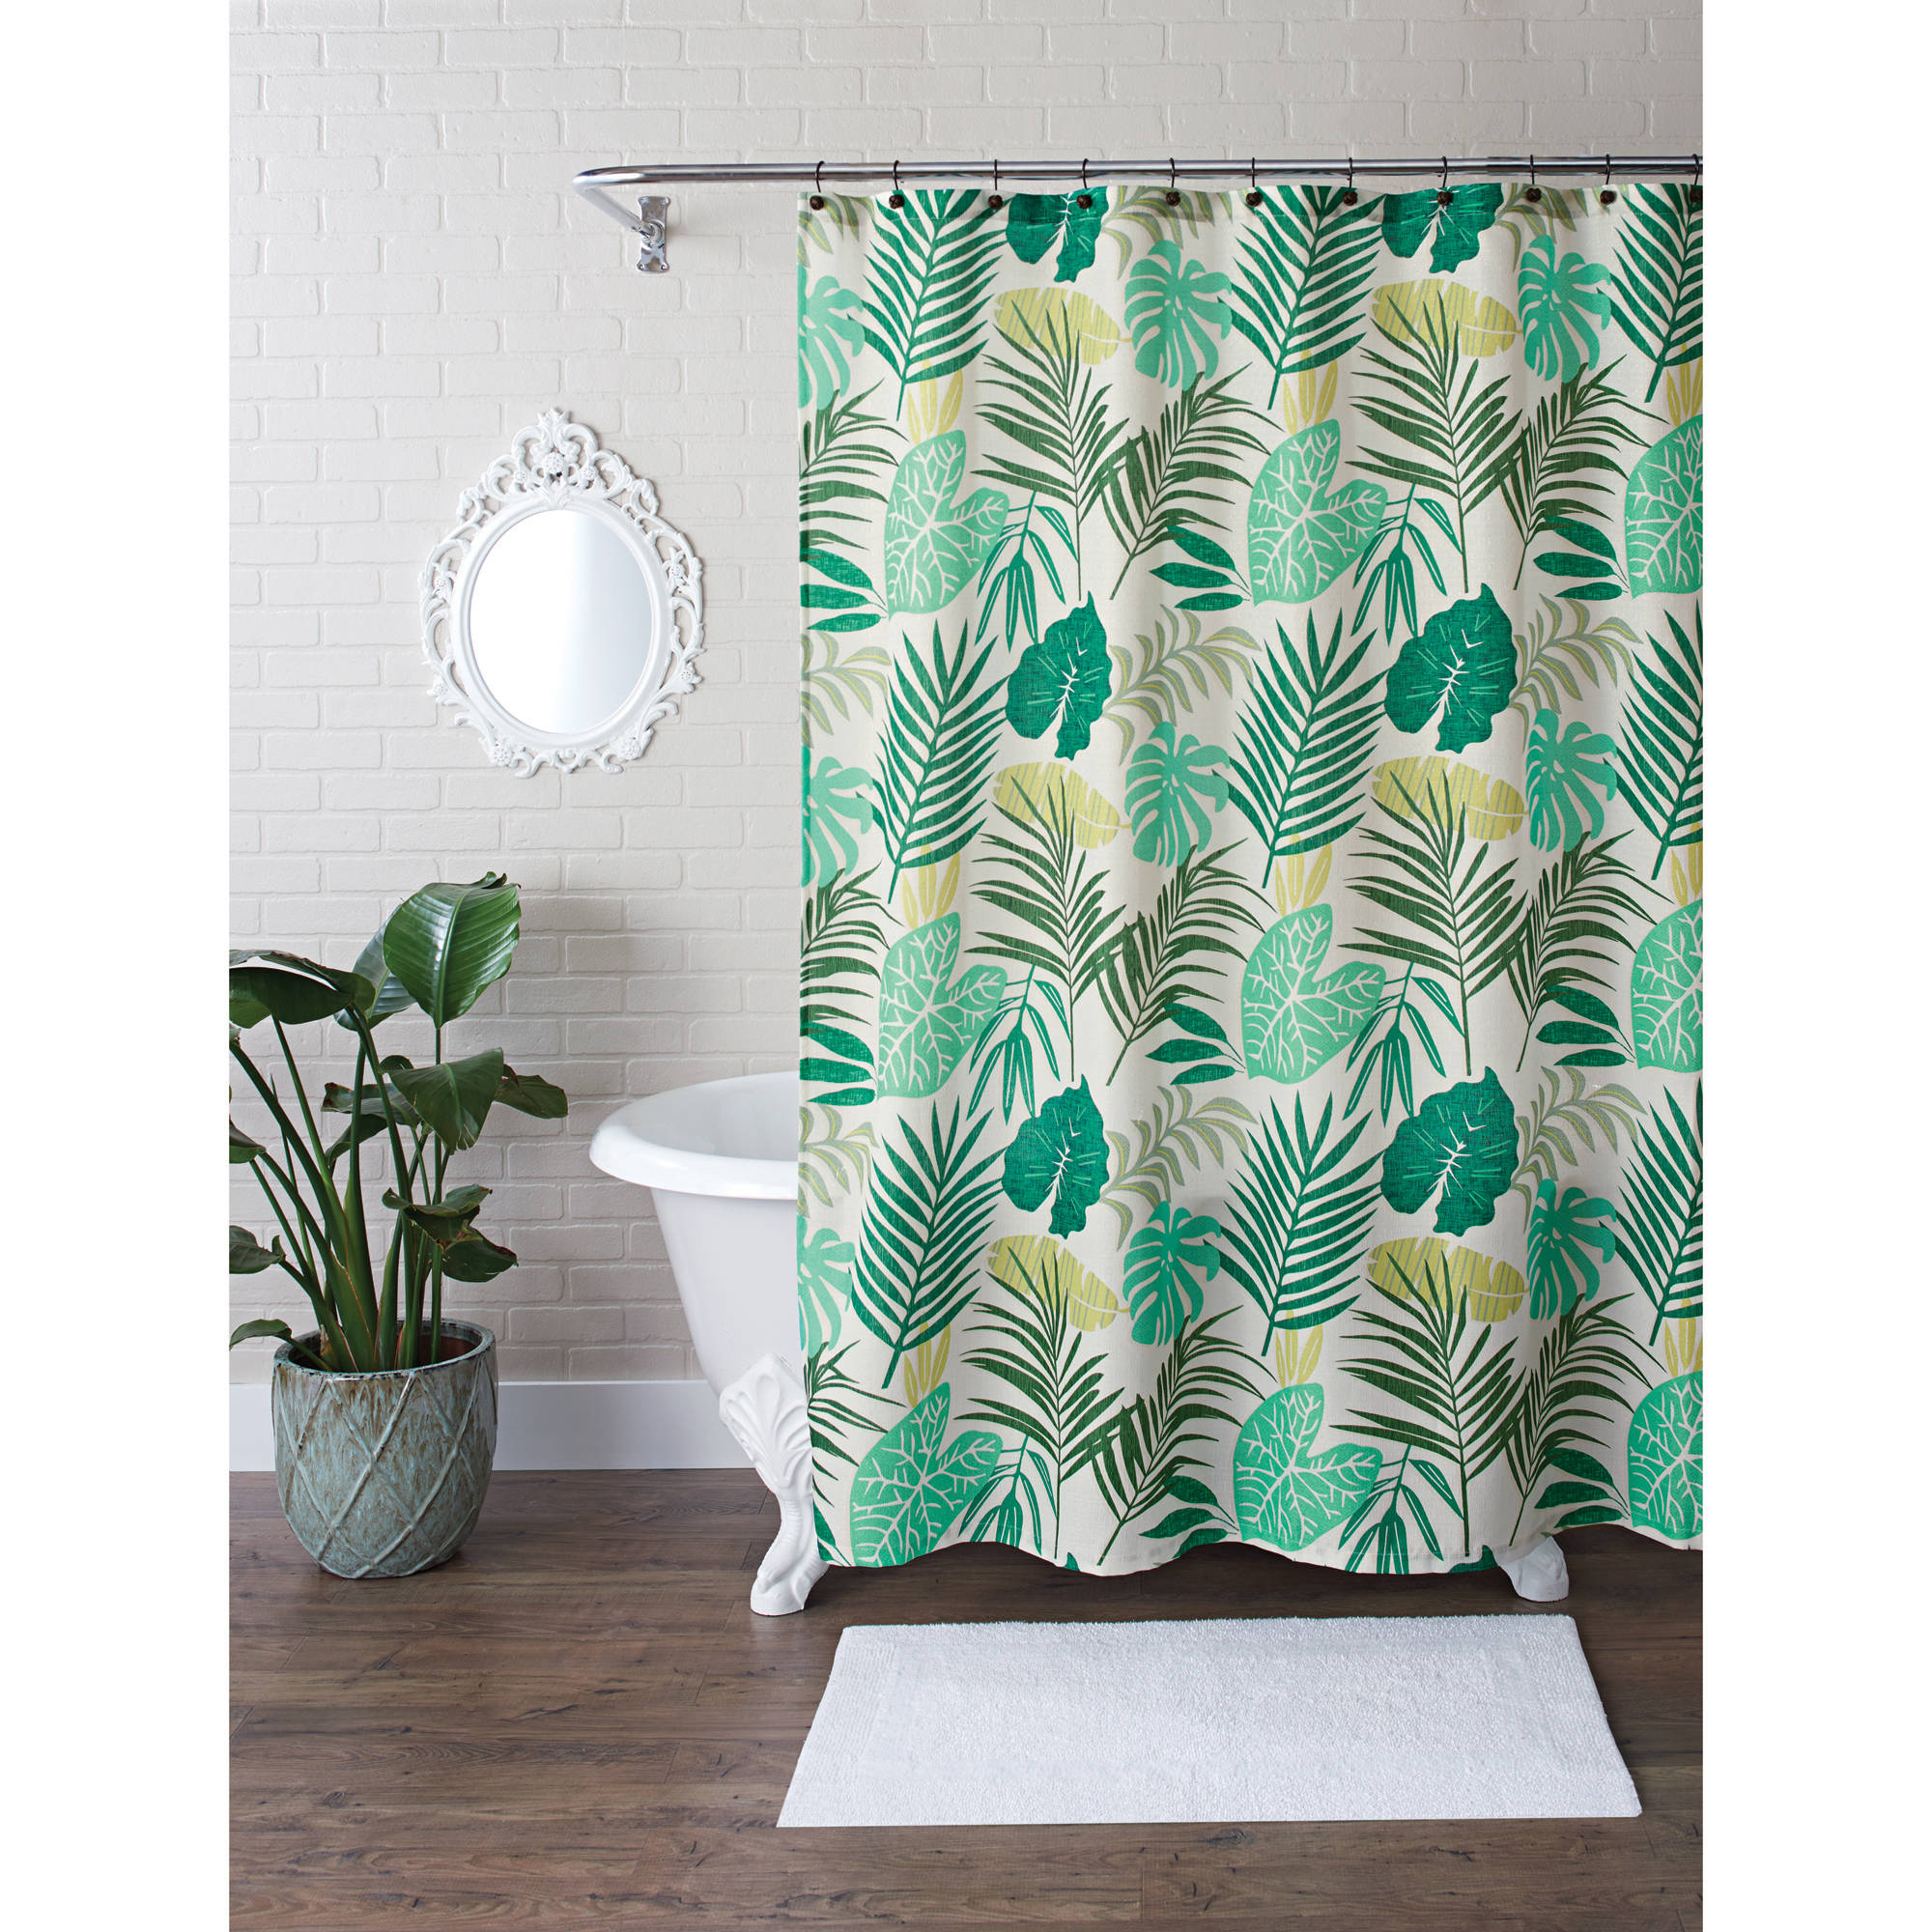 Better Homes and Gardens Tropical Palm Fabric 13-Piece Shower Curtain Set by Maytex Mills